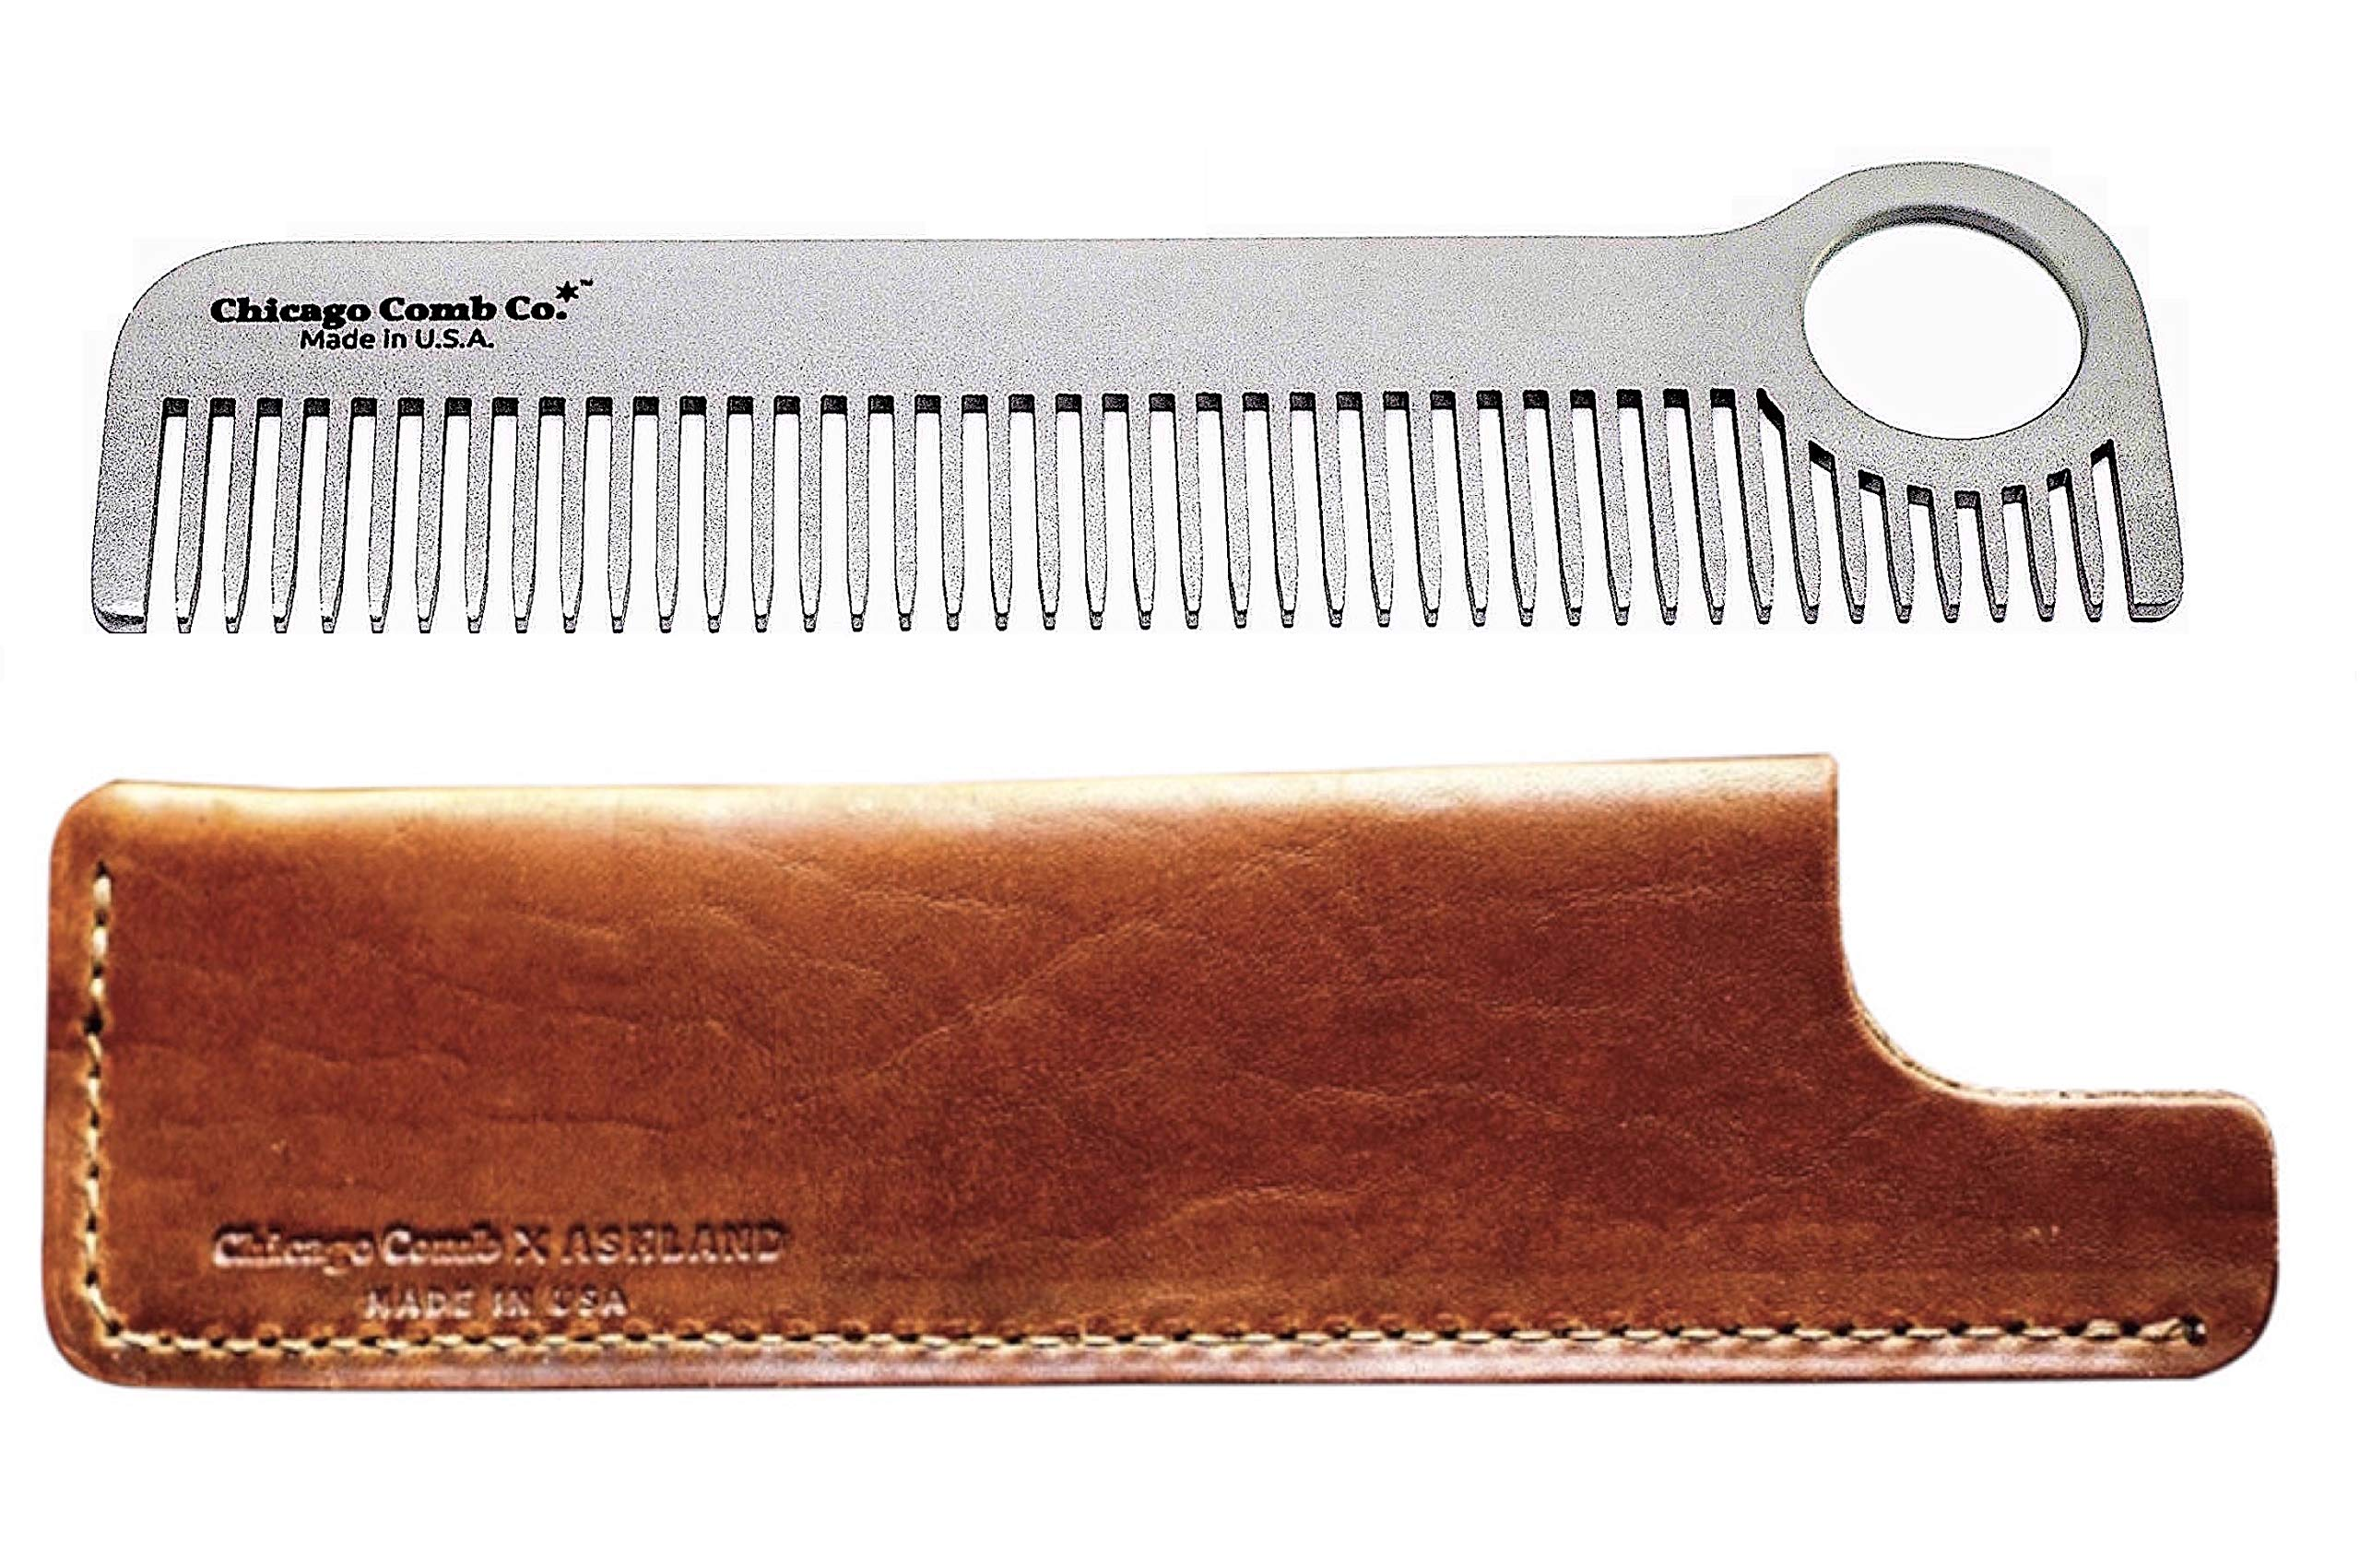 Chicago Comb Model 1 Stainless Steel + Horween Tan Leather Sheath, Made in USA, Ultra-Smooth, Durable, Anti-Static, 5.5 in. (14 cm) Long, Medium Tines, Ultimate Daily Use & Pocket Comb, Gift Set by Chicago Comb